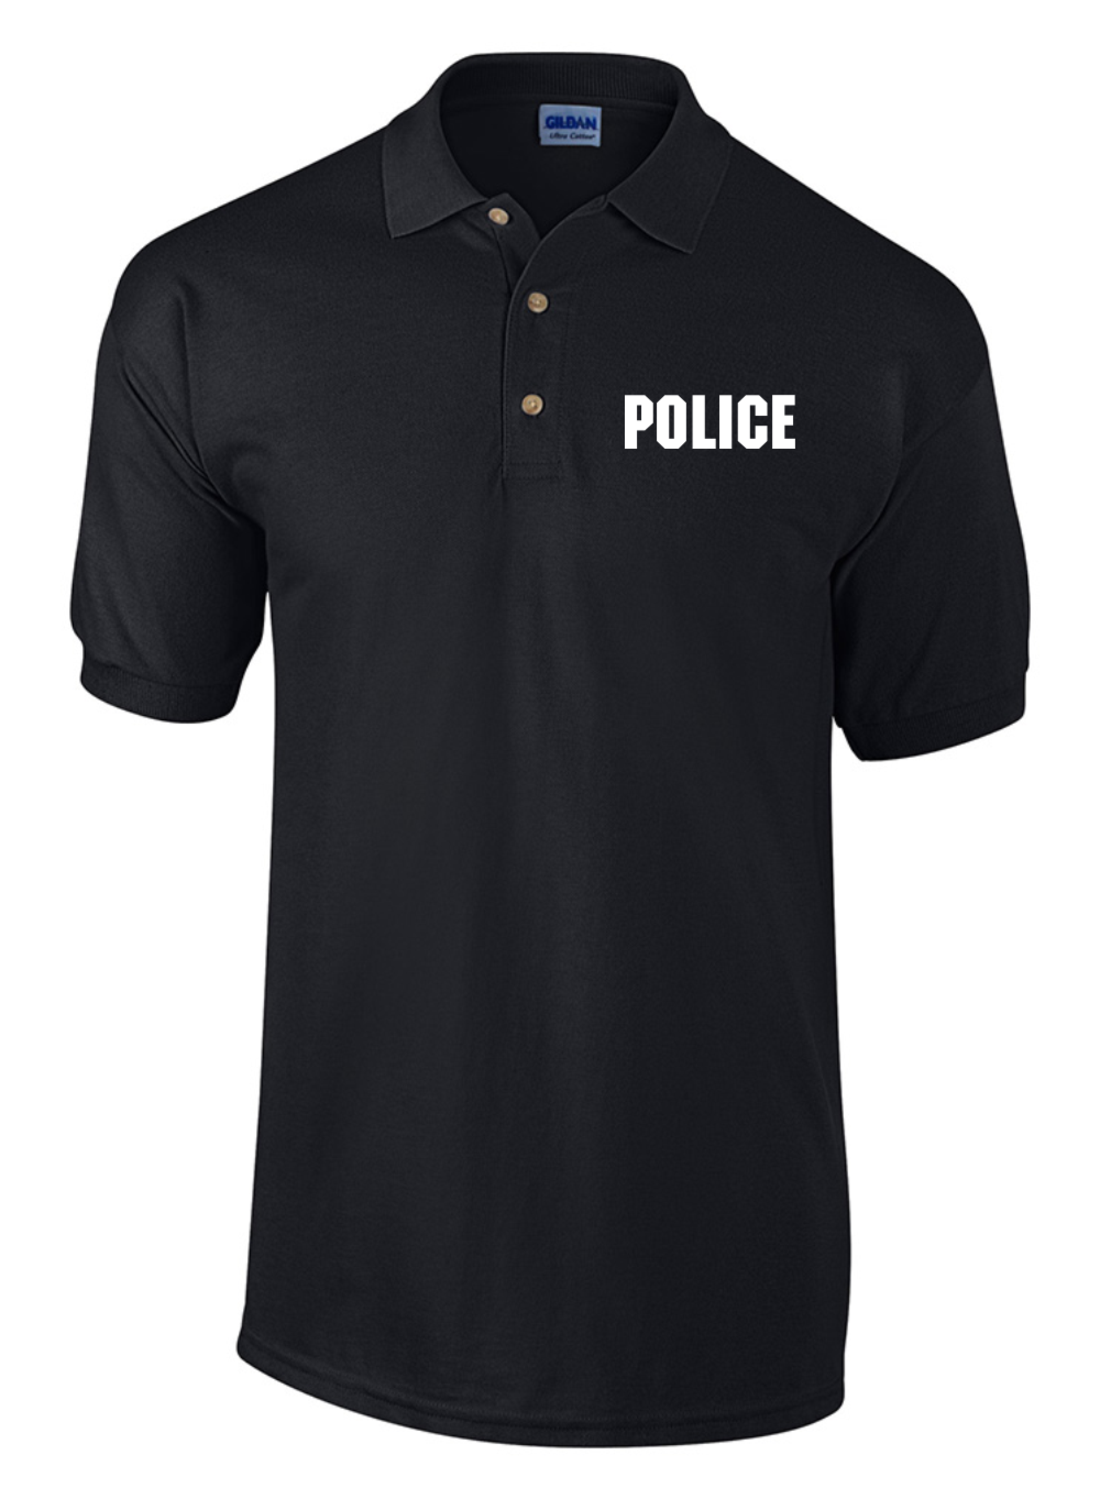 Law enforcement knit polo shirt with raid style imprint for Embroidered police polo shirts